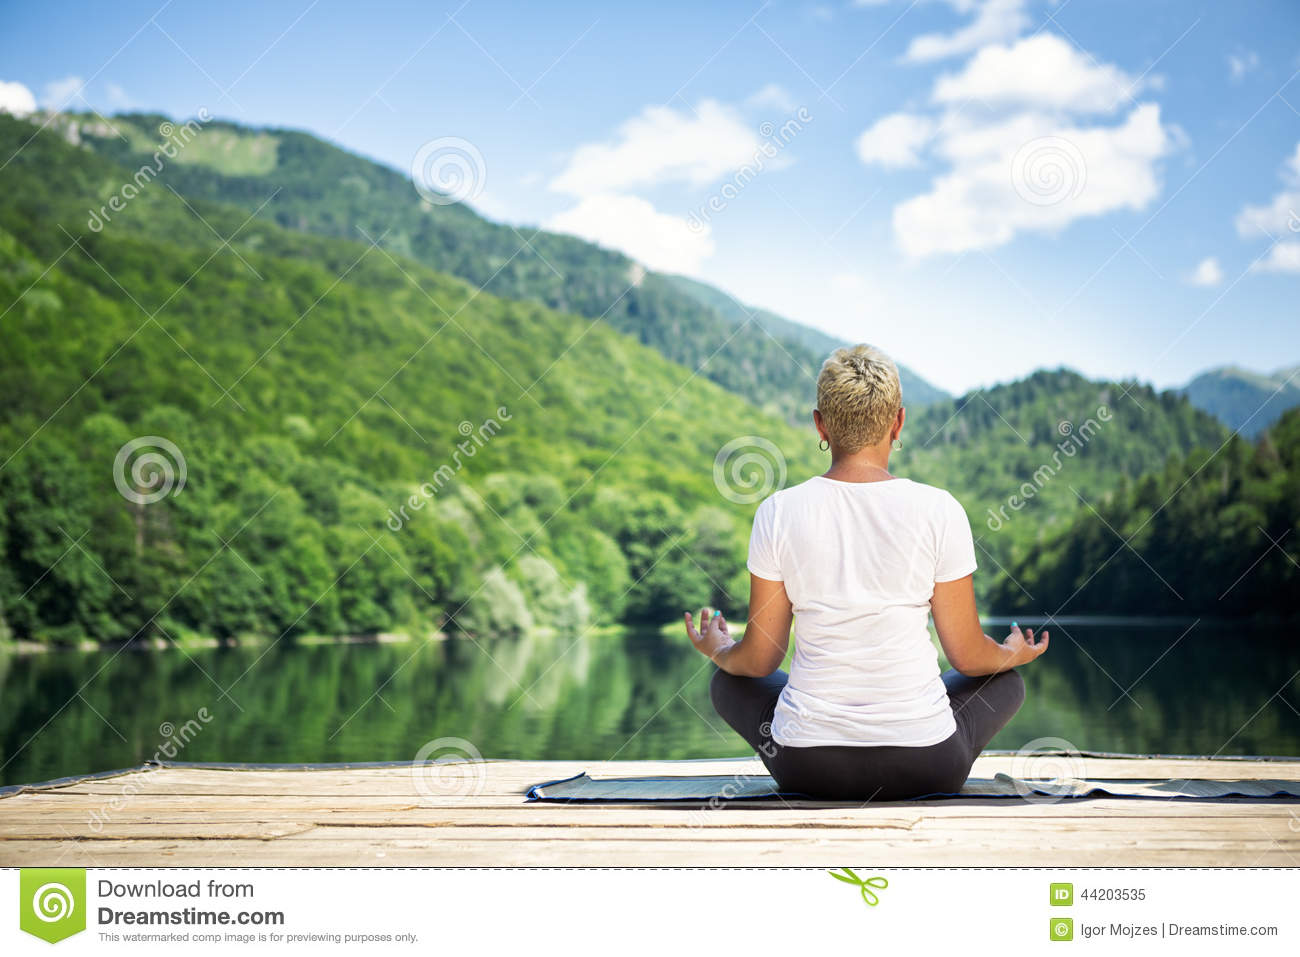 meditation online dating Mic covers news, opinion, reviews and analysis around arts, entertainment, celebrity, lgbtq, social justice, police brutality, dating, sex, feminism, body positivity, space, innovation, climate change.